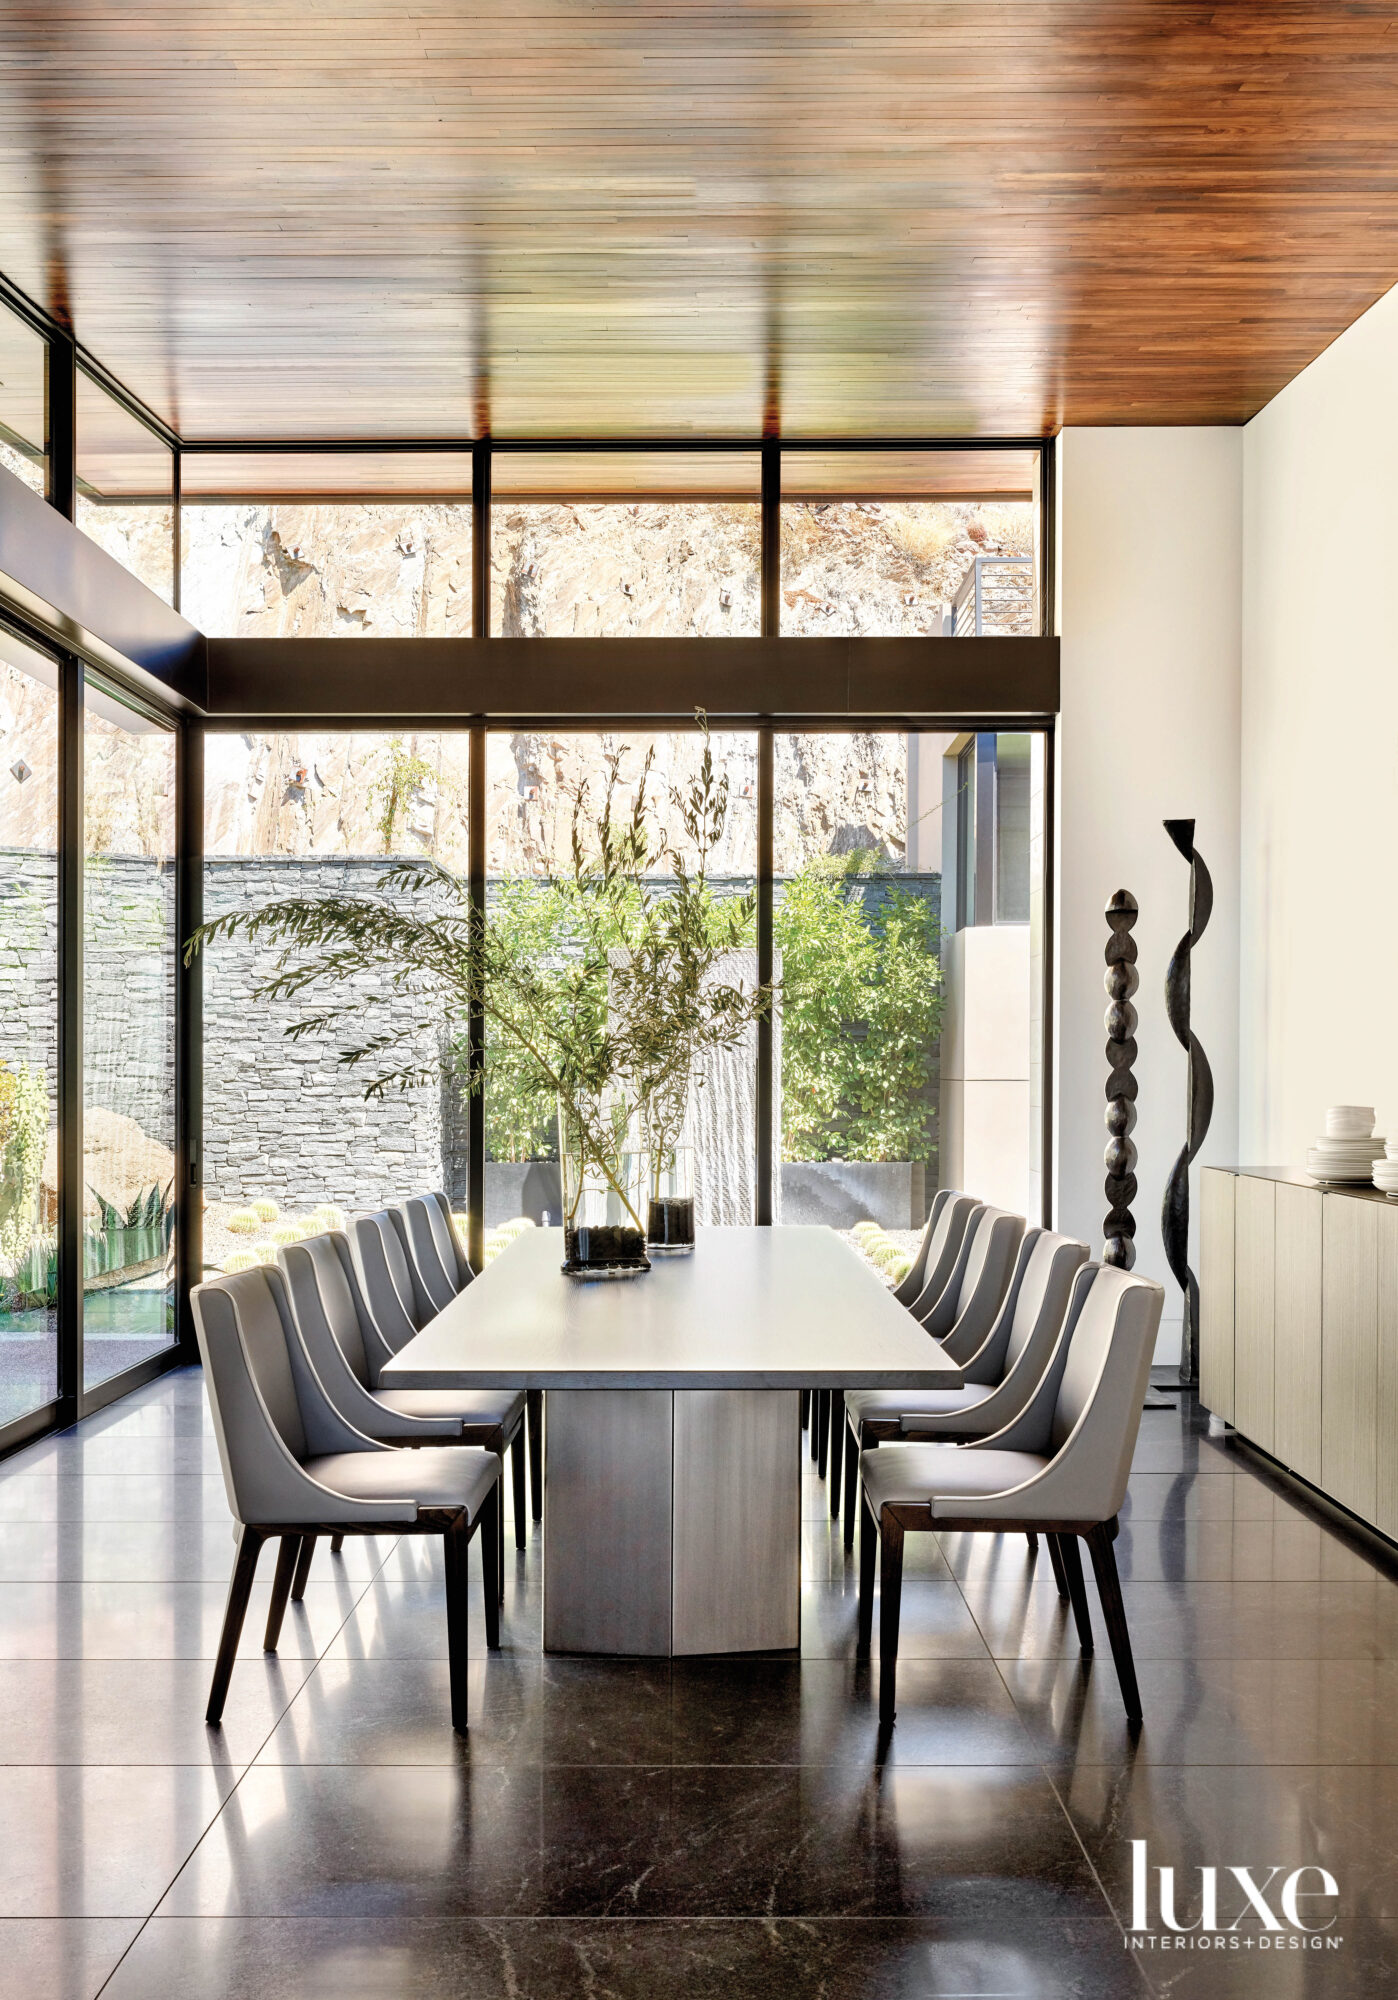 A dining room with stone floors that looks out on to a garden.